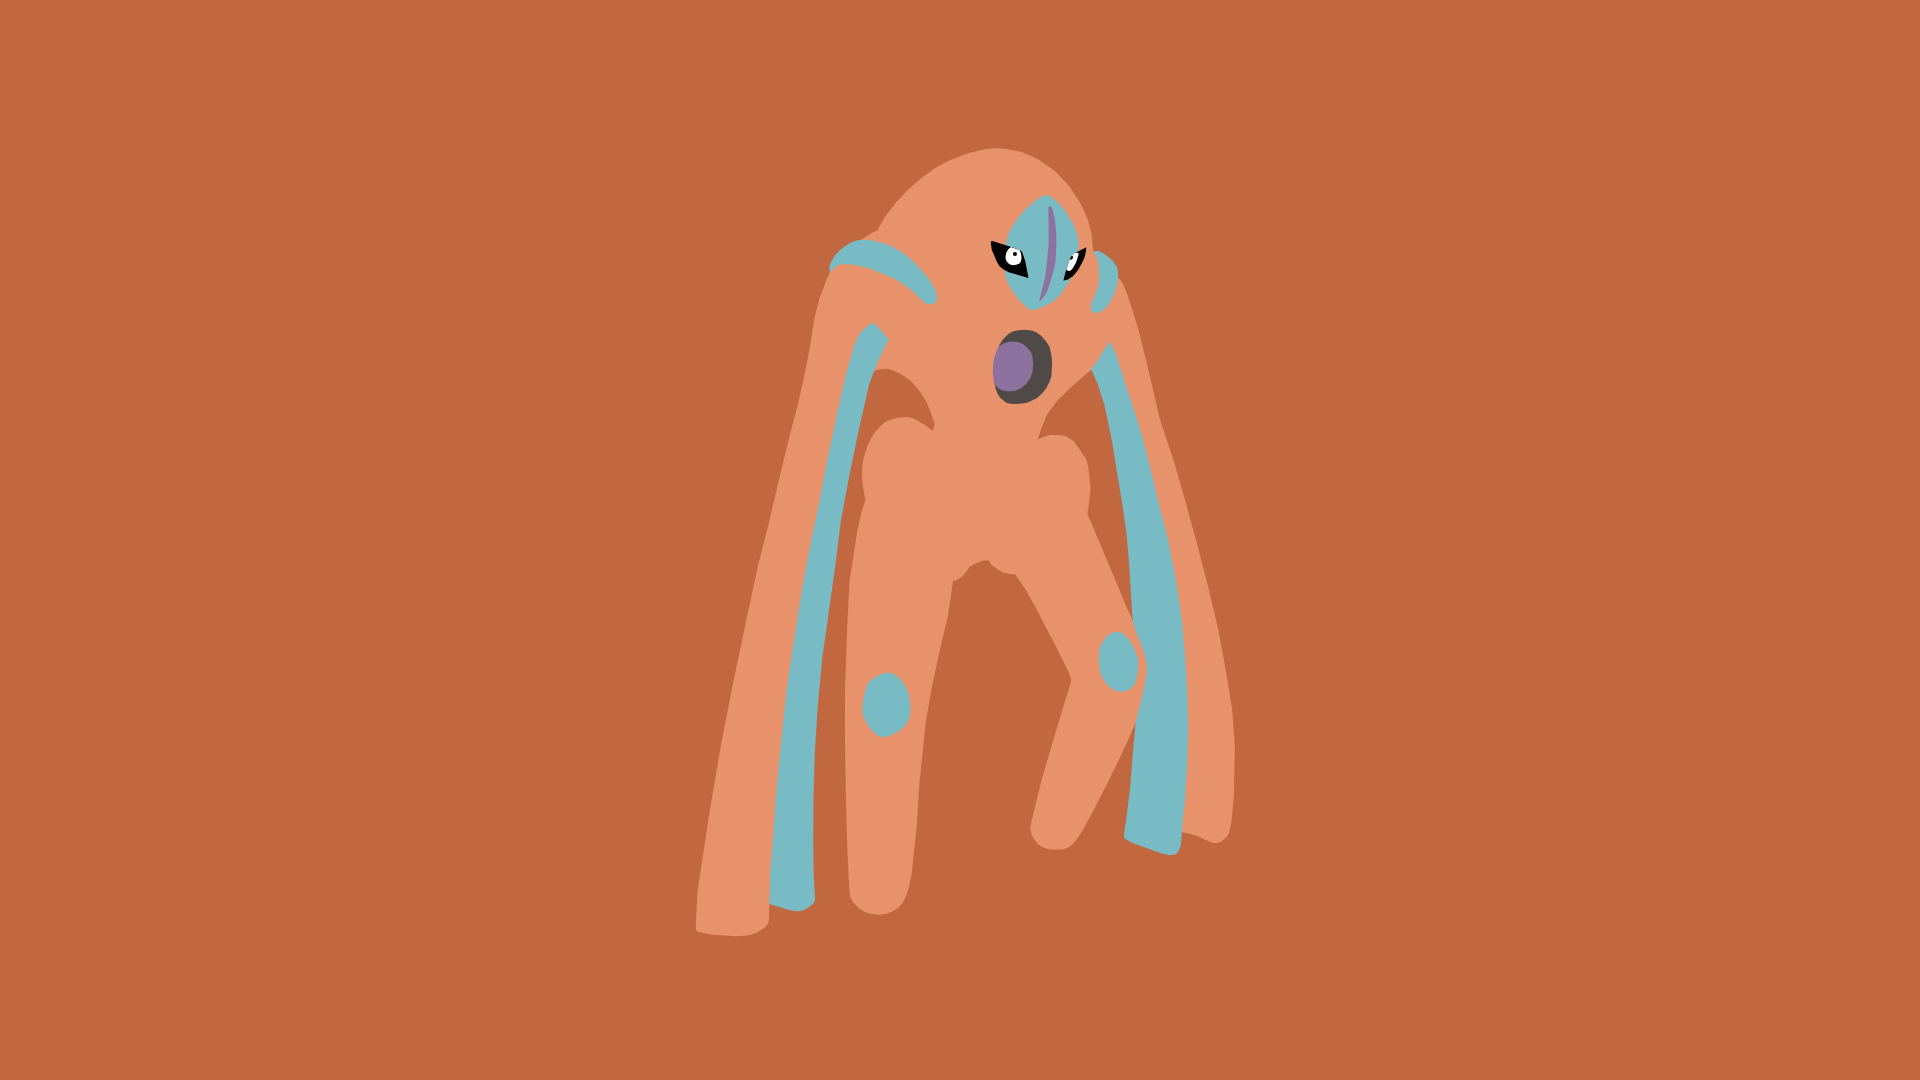 Minimalistic Wallpaper: Deoxys [Defense]